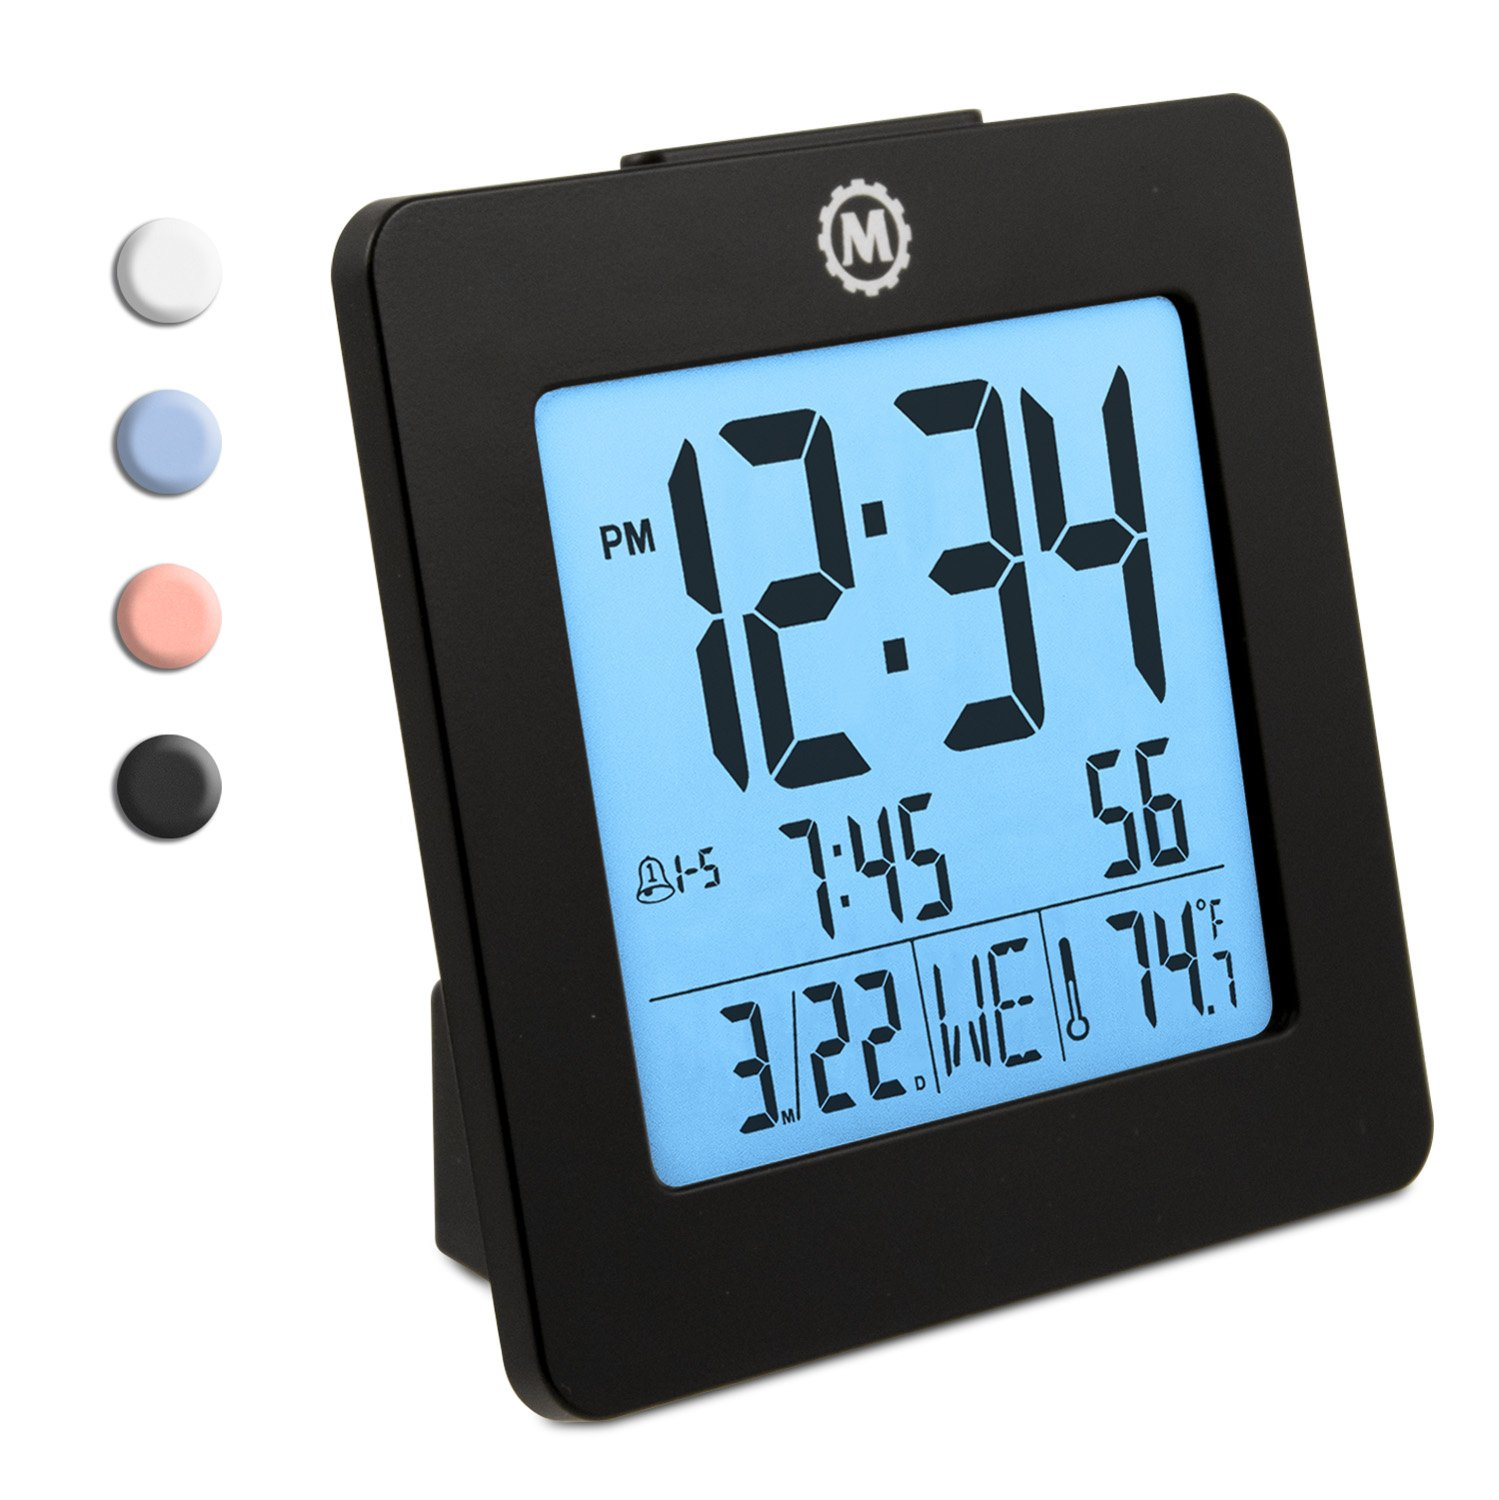 Amazon.com: Marathon CL030050BK Digital Alarm Clock with Day, Date ...